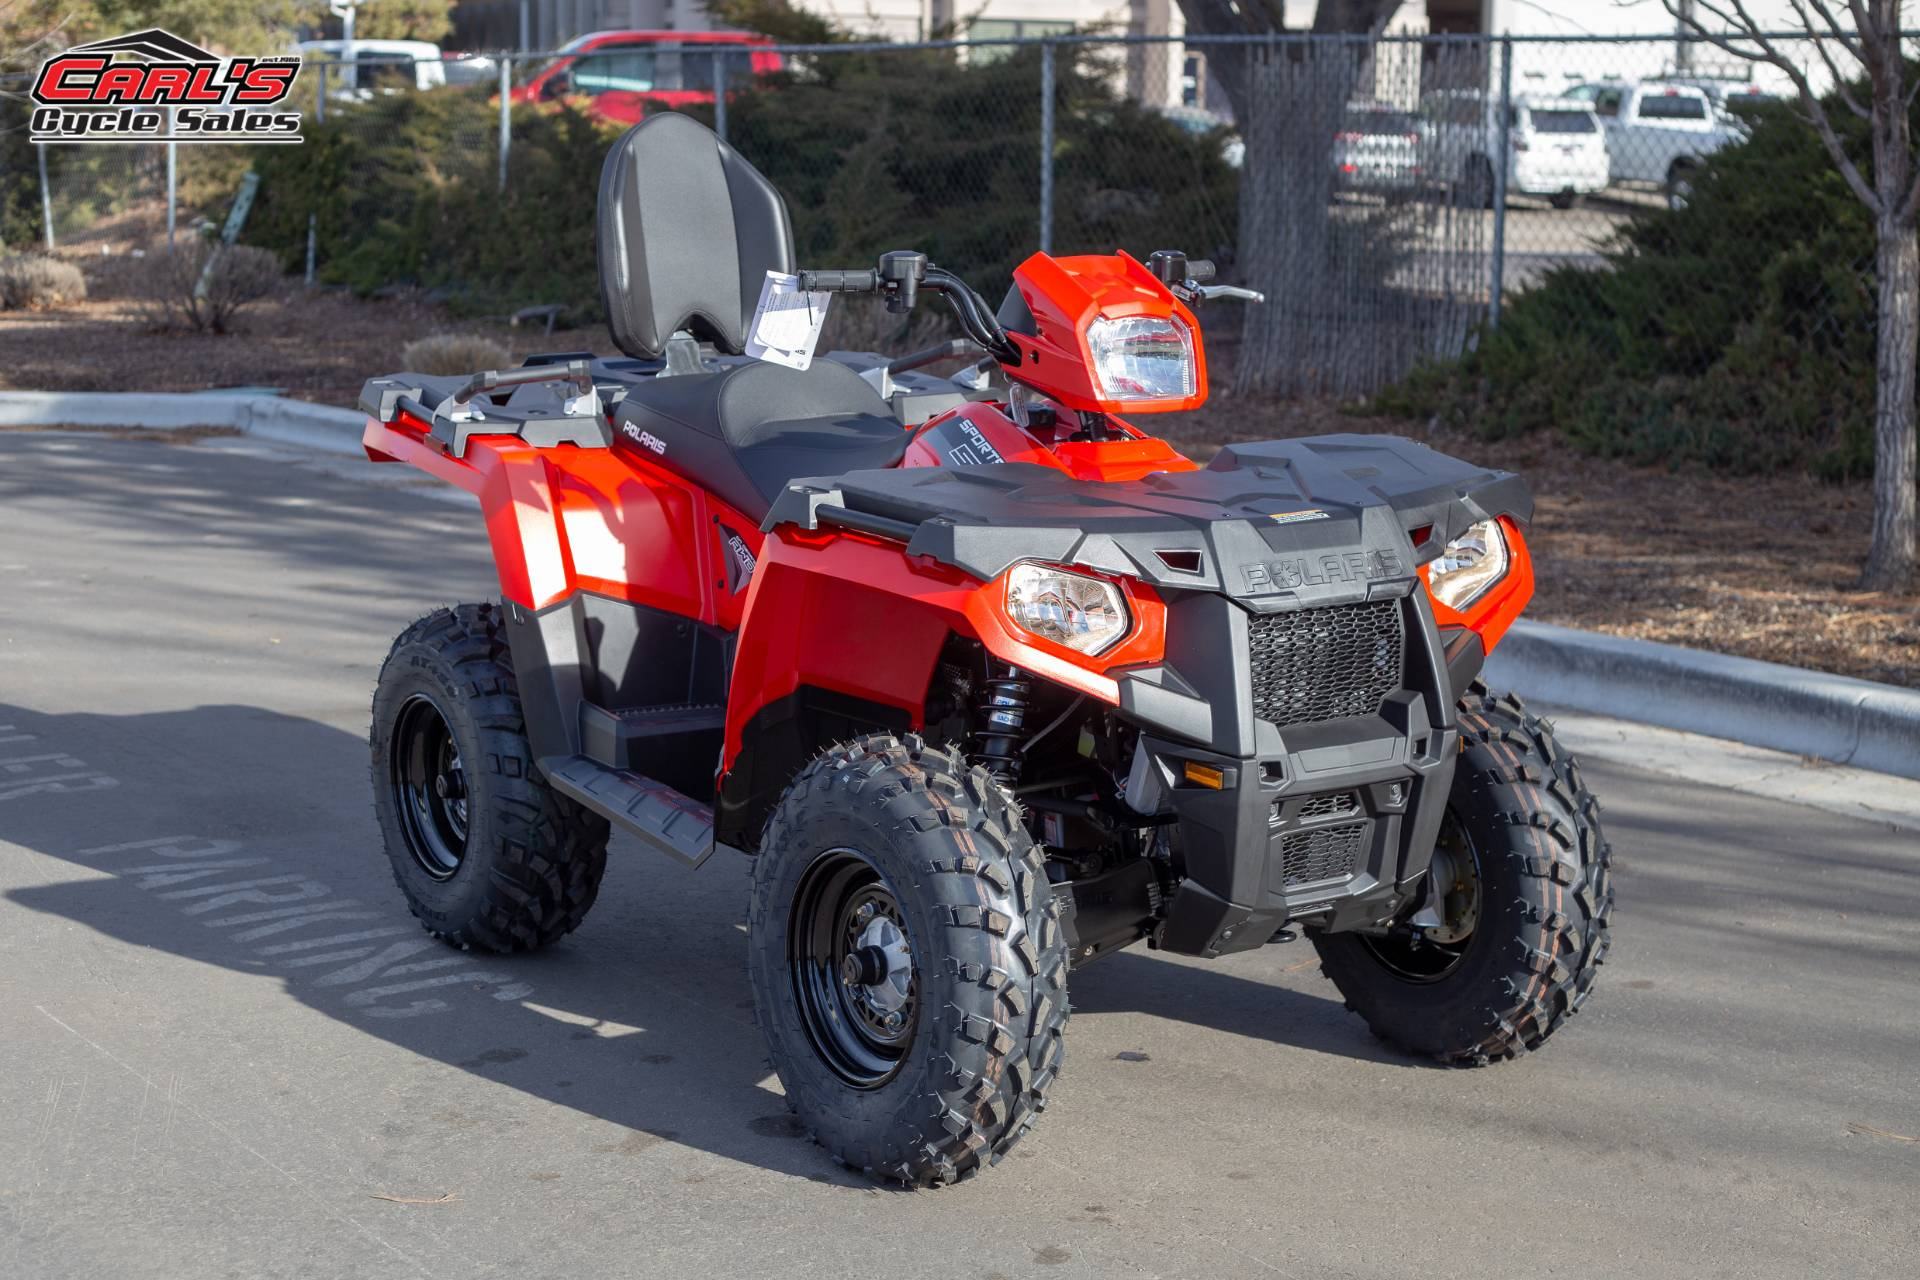 2019 Polaris Sportsman Touring 570 in Boise, Idaho - Photo 6